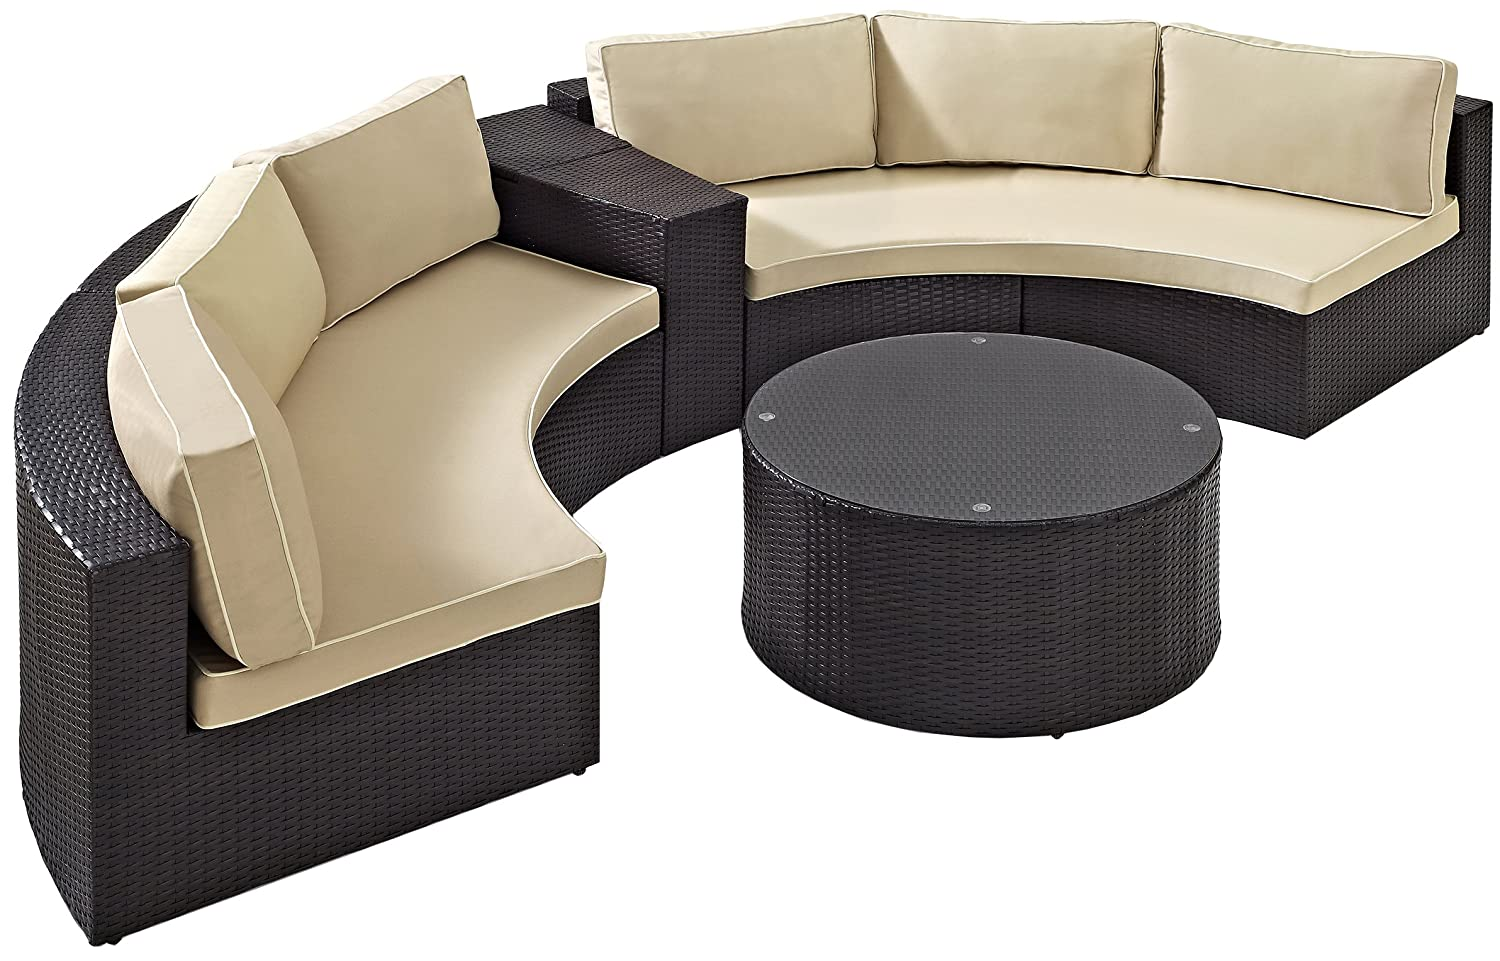 Crosley Furniture Catalina 4-Piece Outdoor Wicker Coffee Table and Sectional Sofa with Sand Cushions – Brown